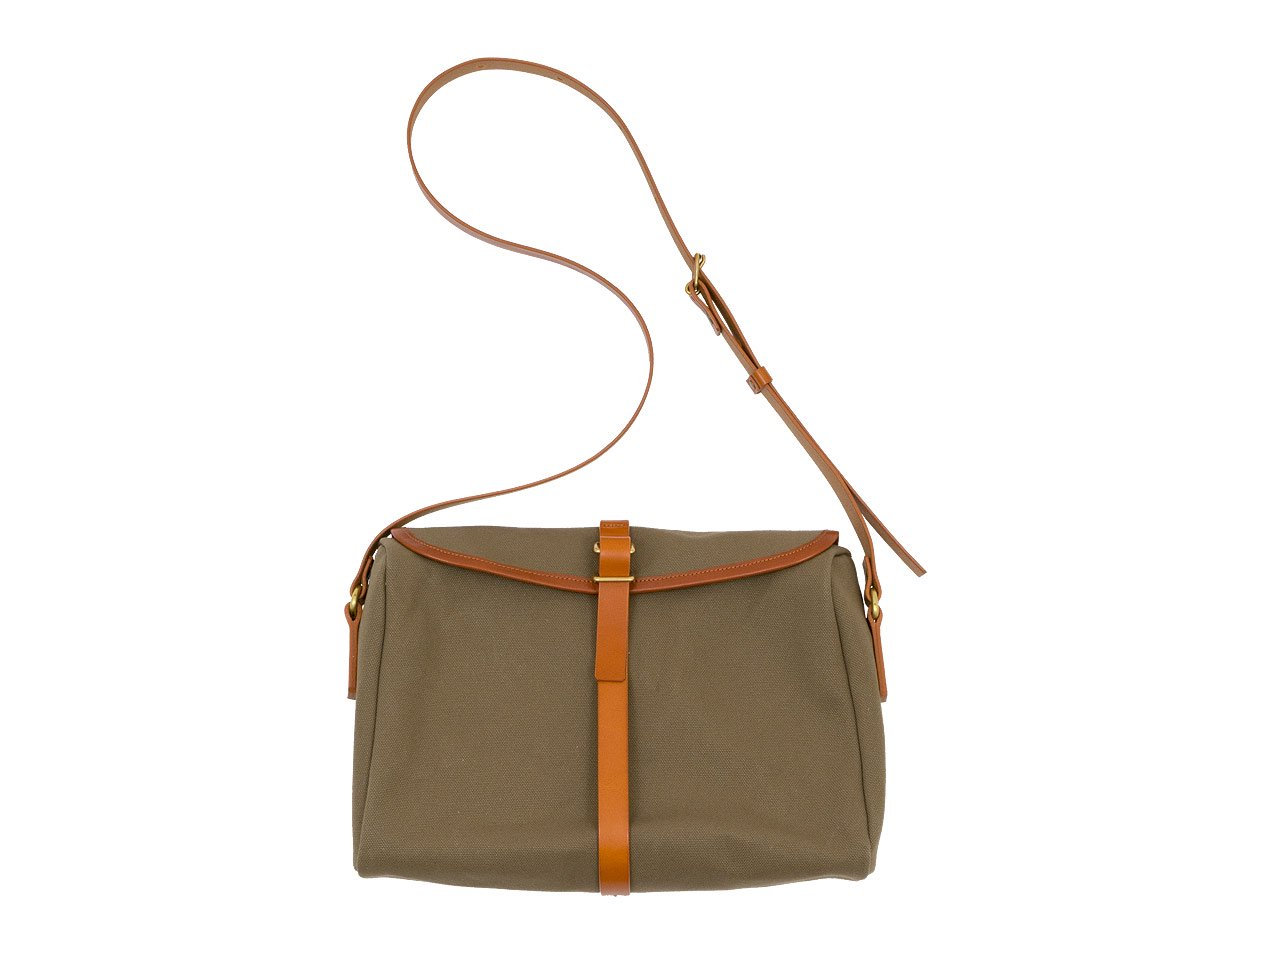 SOUTHERN FiELD INDUSTRiES Satchel 300 Oak&Tan